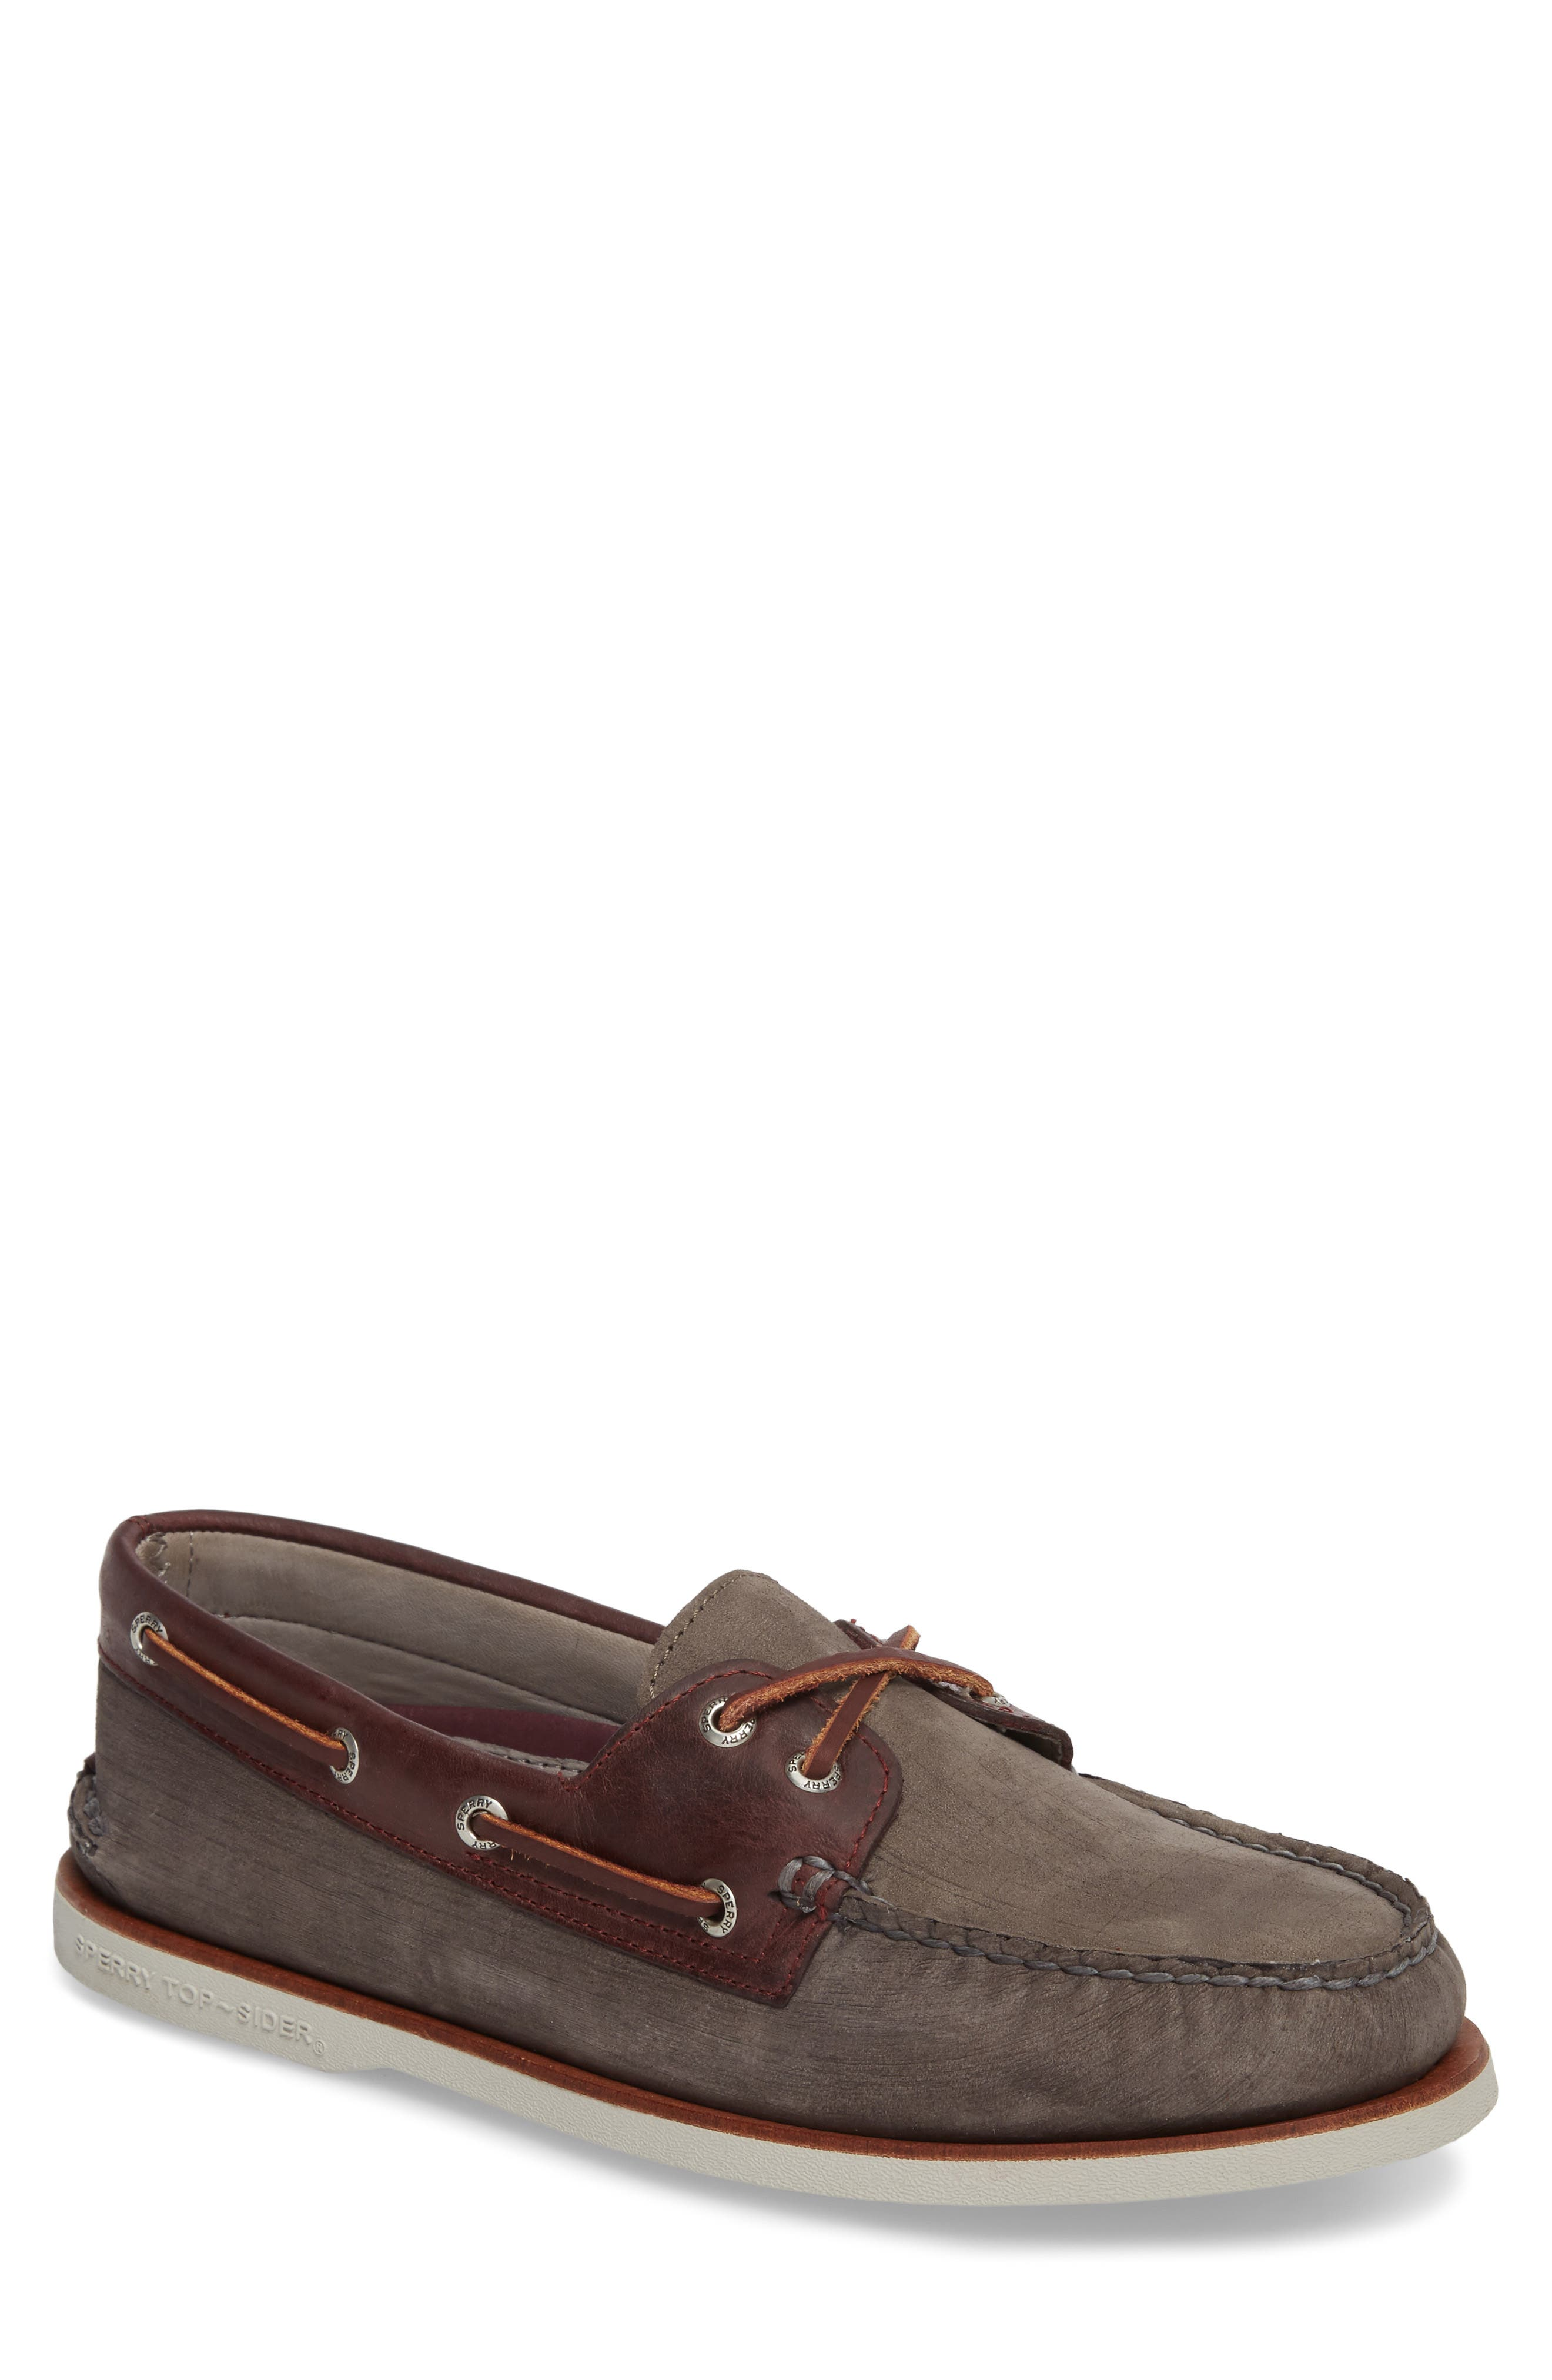 Gold Cup - Authentic Original Boat Shoe,                             Main thumbnail 1, color,                             Grey/ Burgundy Leather Nubuck